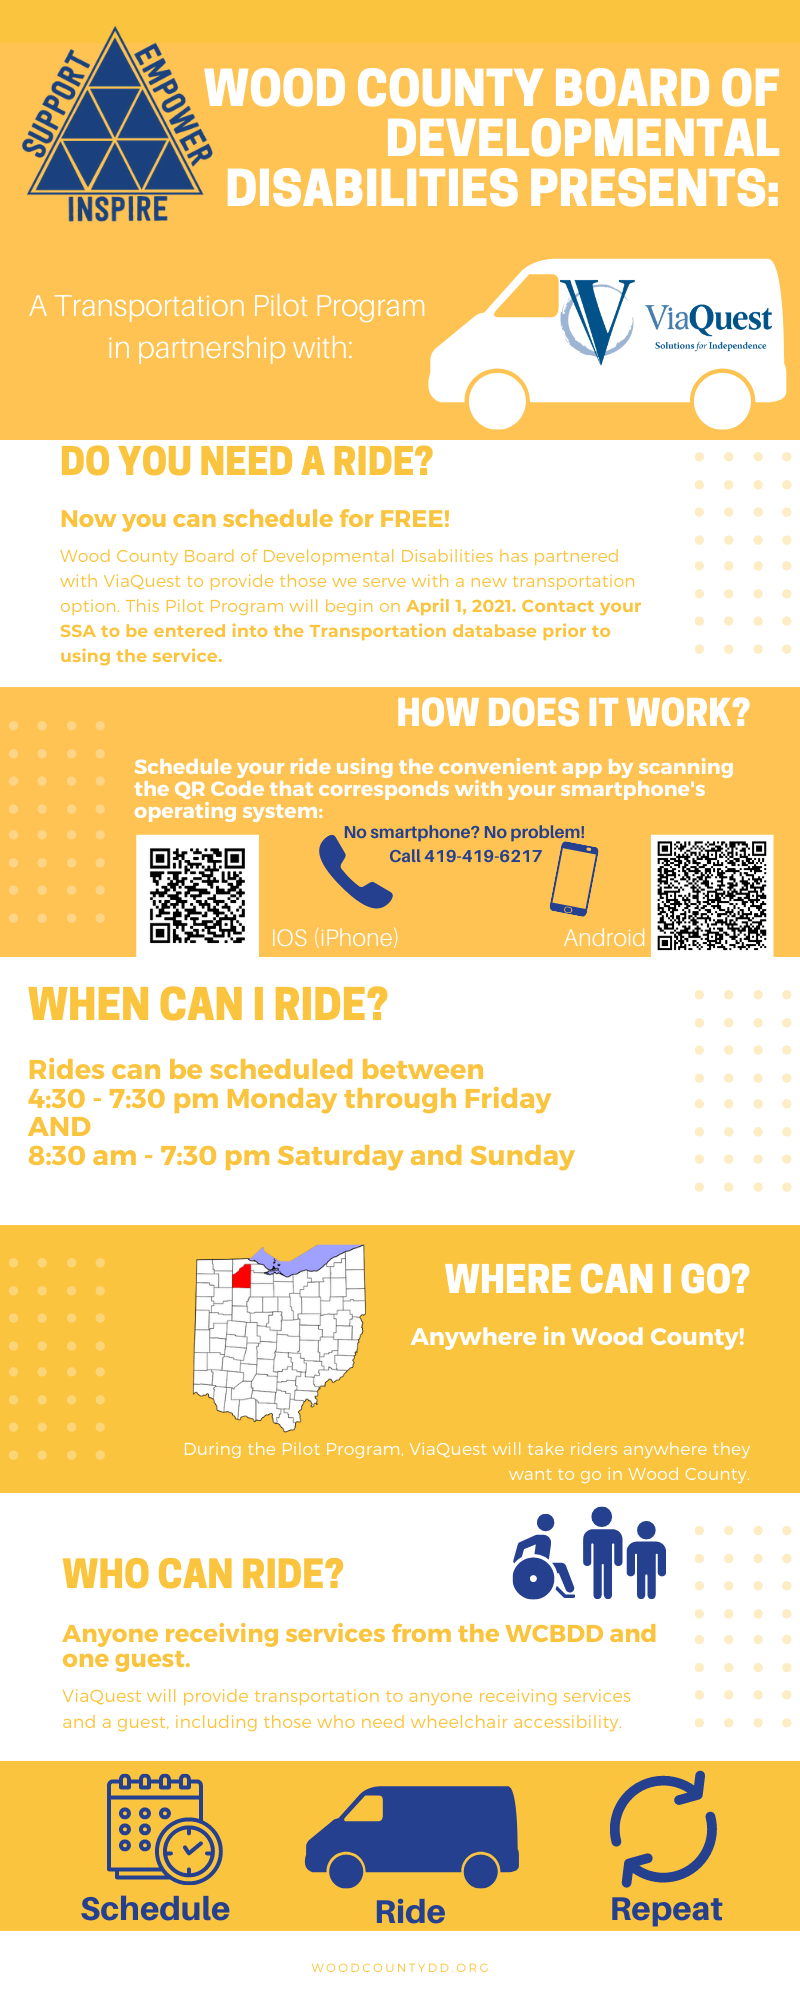 Flyer Including the Following Information: Our Transportation Pilot Program is offered in partnership with ViaQuest. If you'd like to participate in this program, you can contact your SSA to be entered into the Transportation Database prior to using the service. There are QR Codes including on the image, if you can't access them you can call 419-419-6217 to schedule a ride. Rides can be scheduled between 4:30-7:30 PM Monday through Friday, and 8:30 AM to 7:30 PM Saturday and Sunday. Anyone receiving services from WCBDD can use this transportation service. Users may also bring one person (family, friend, DSP) to ride along.